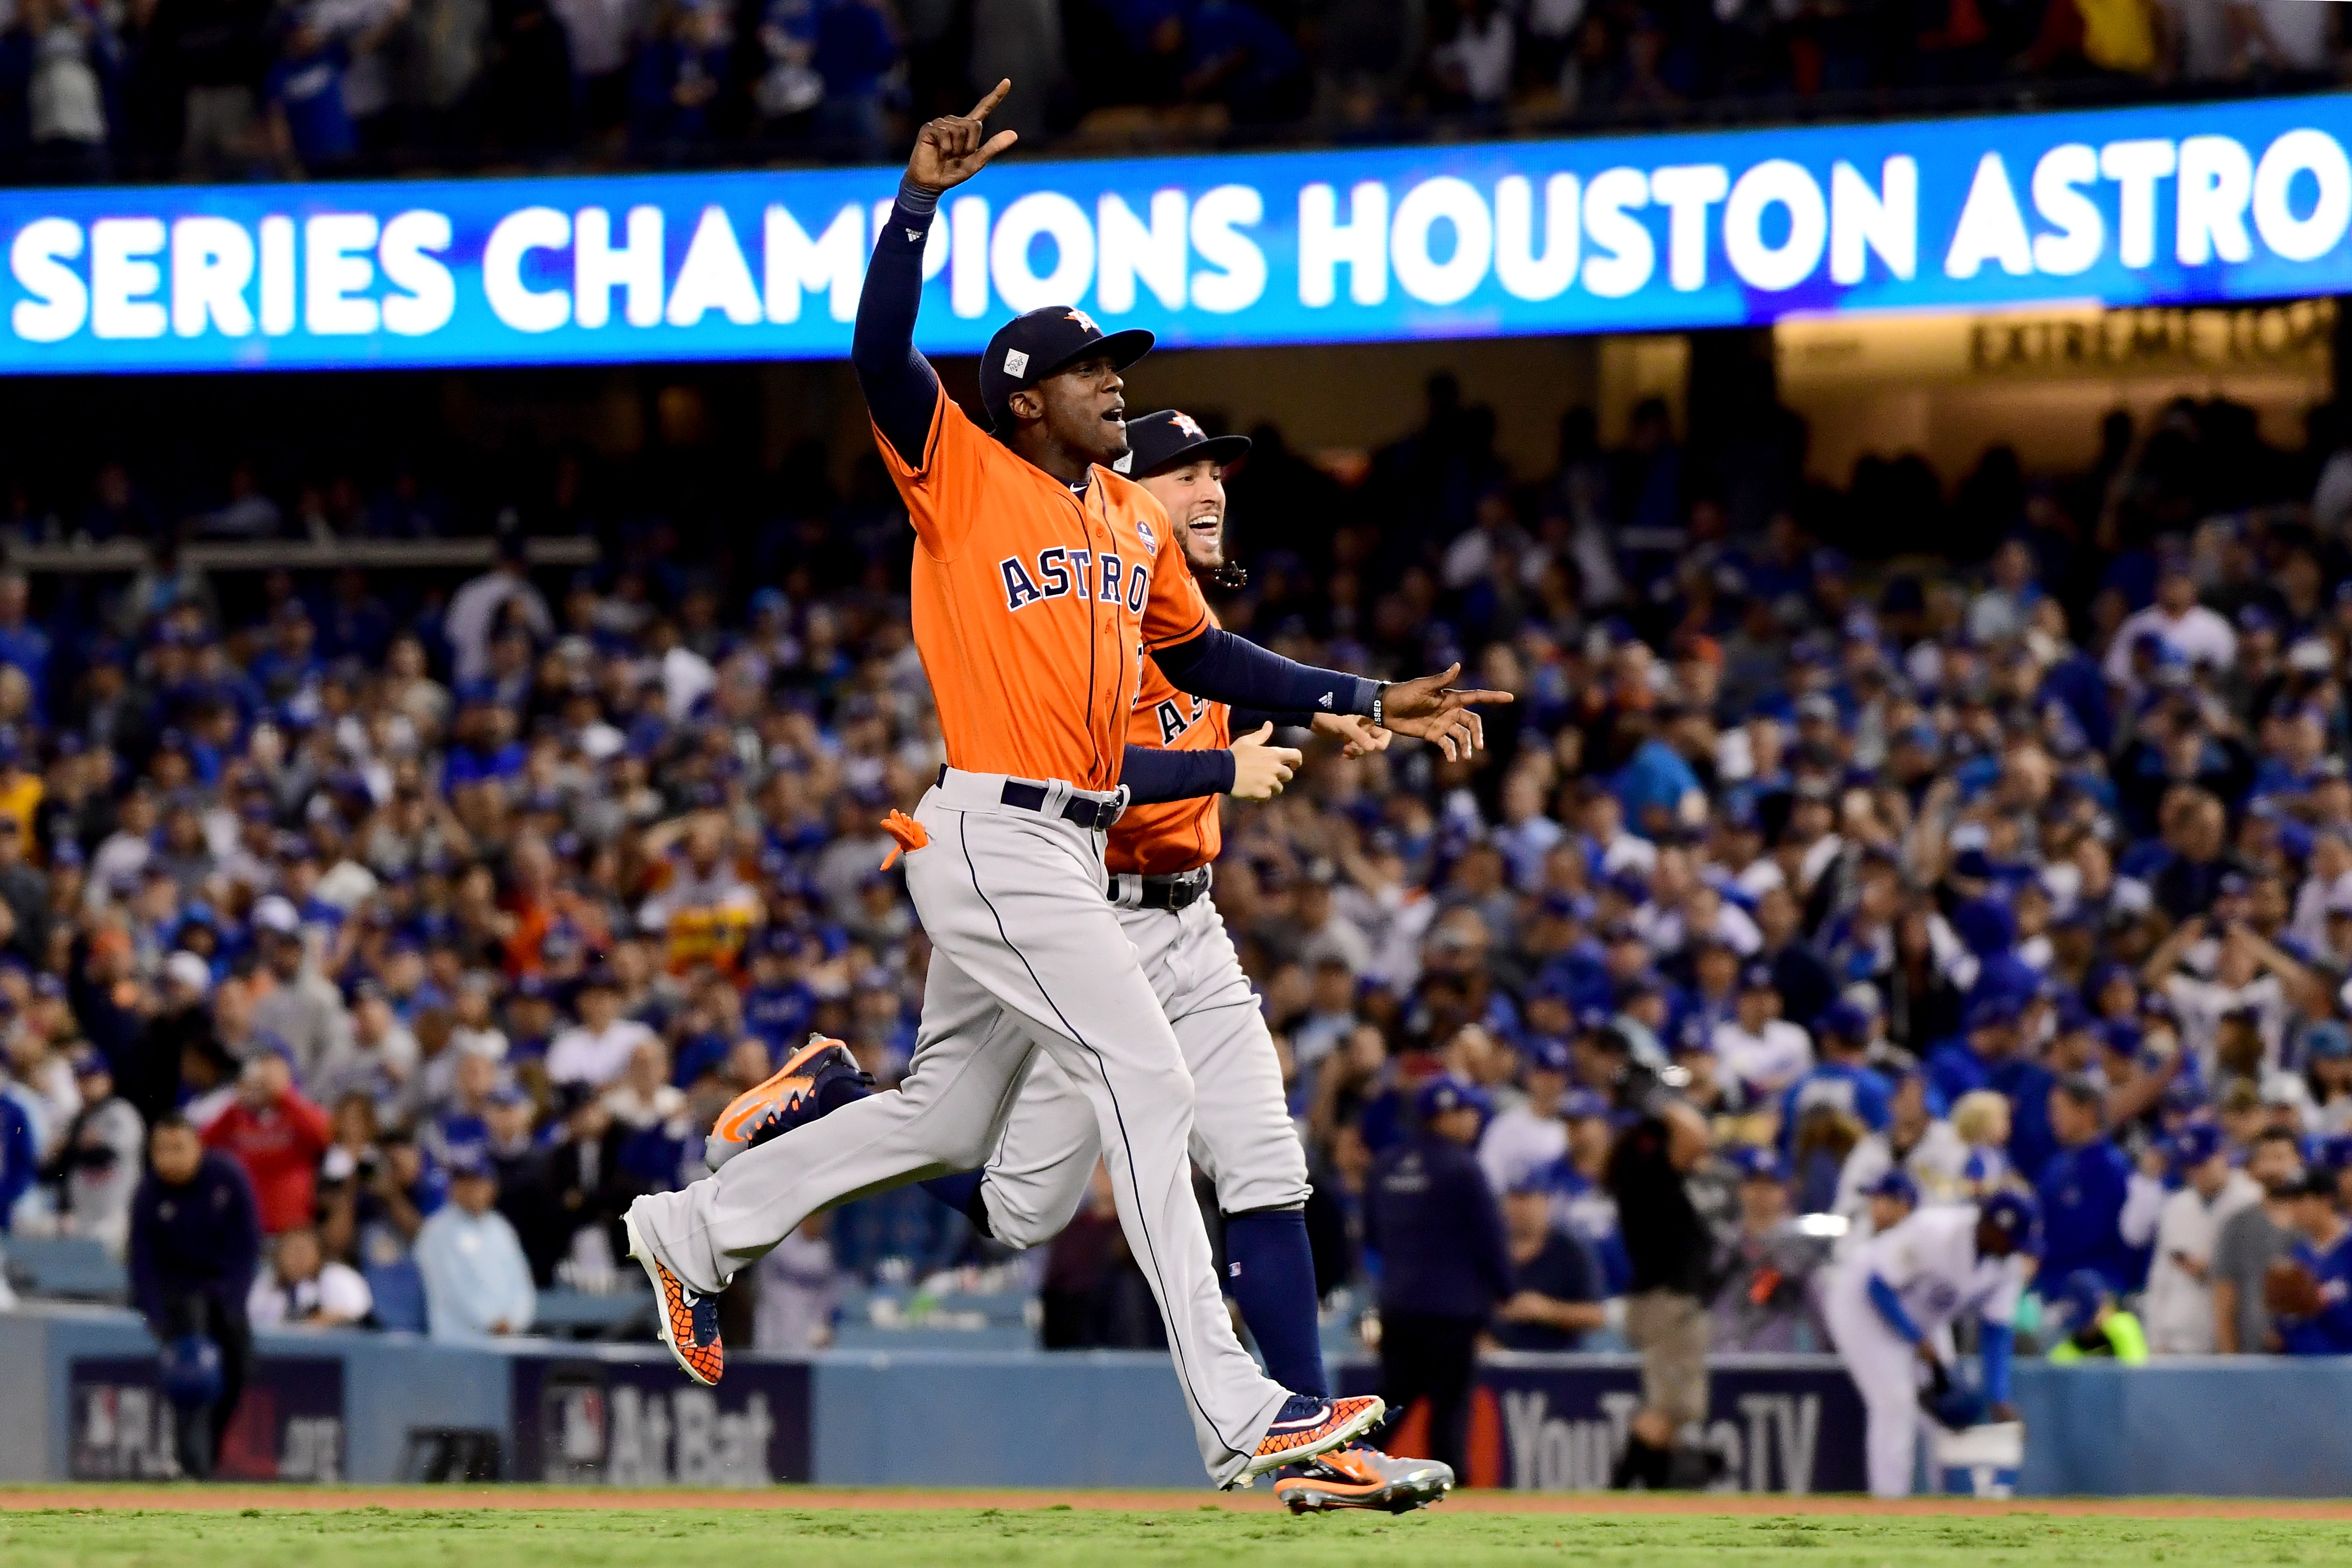 Houston Astros And Their Fans Score Tons Of Free Food After World Series Win